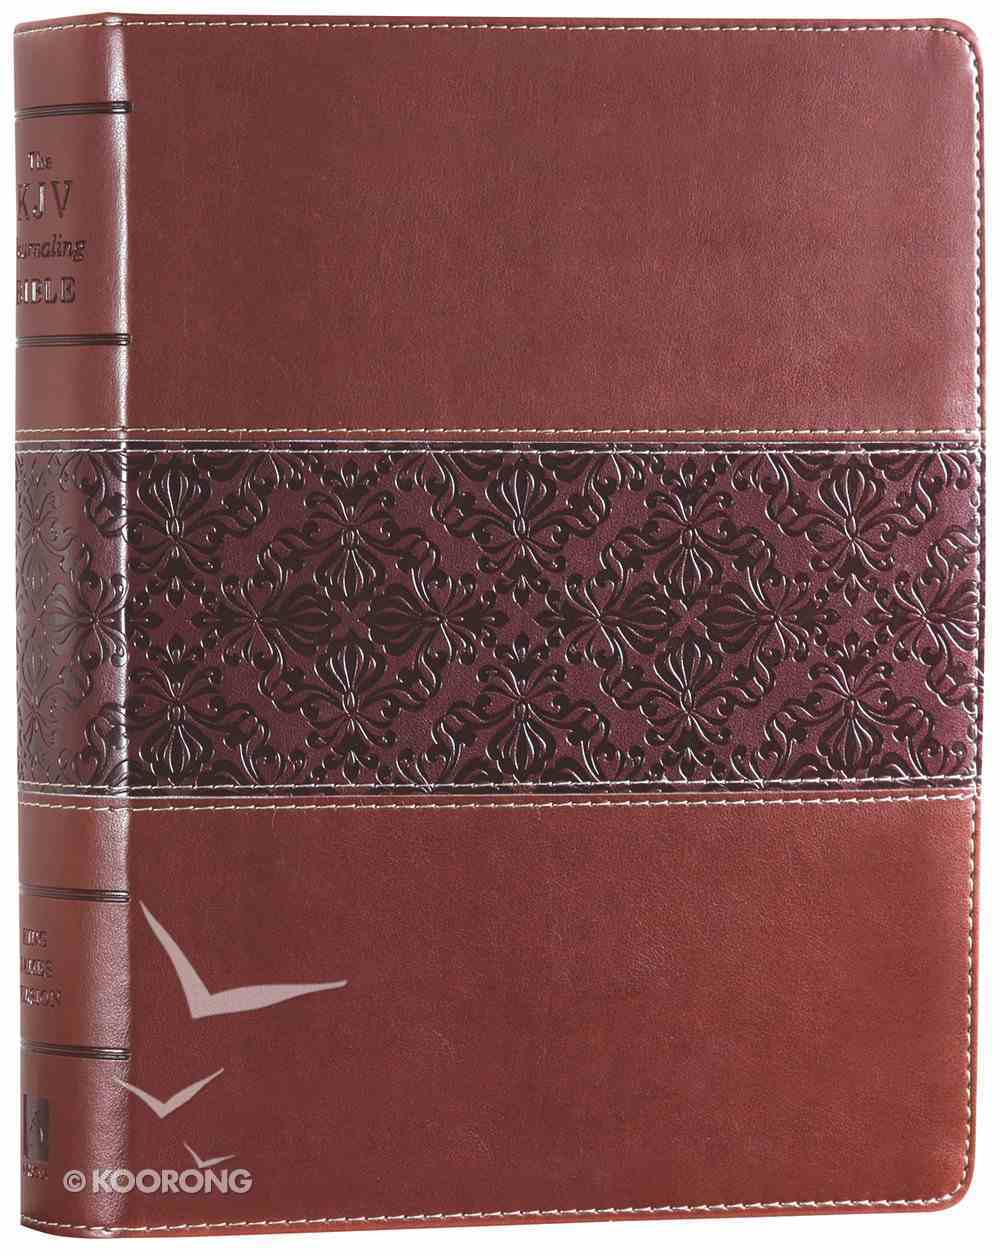 KJV Wide Margin Personal Notes Bible Brown Tan (Red Letter Edition) Imitation Leather